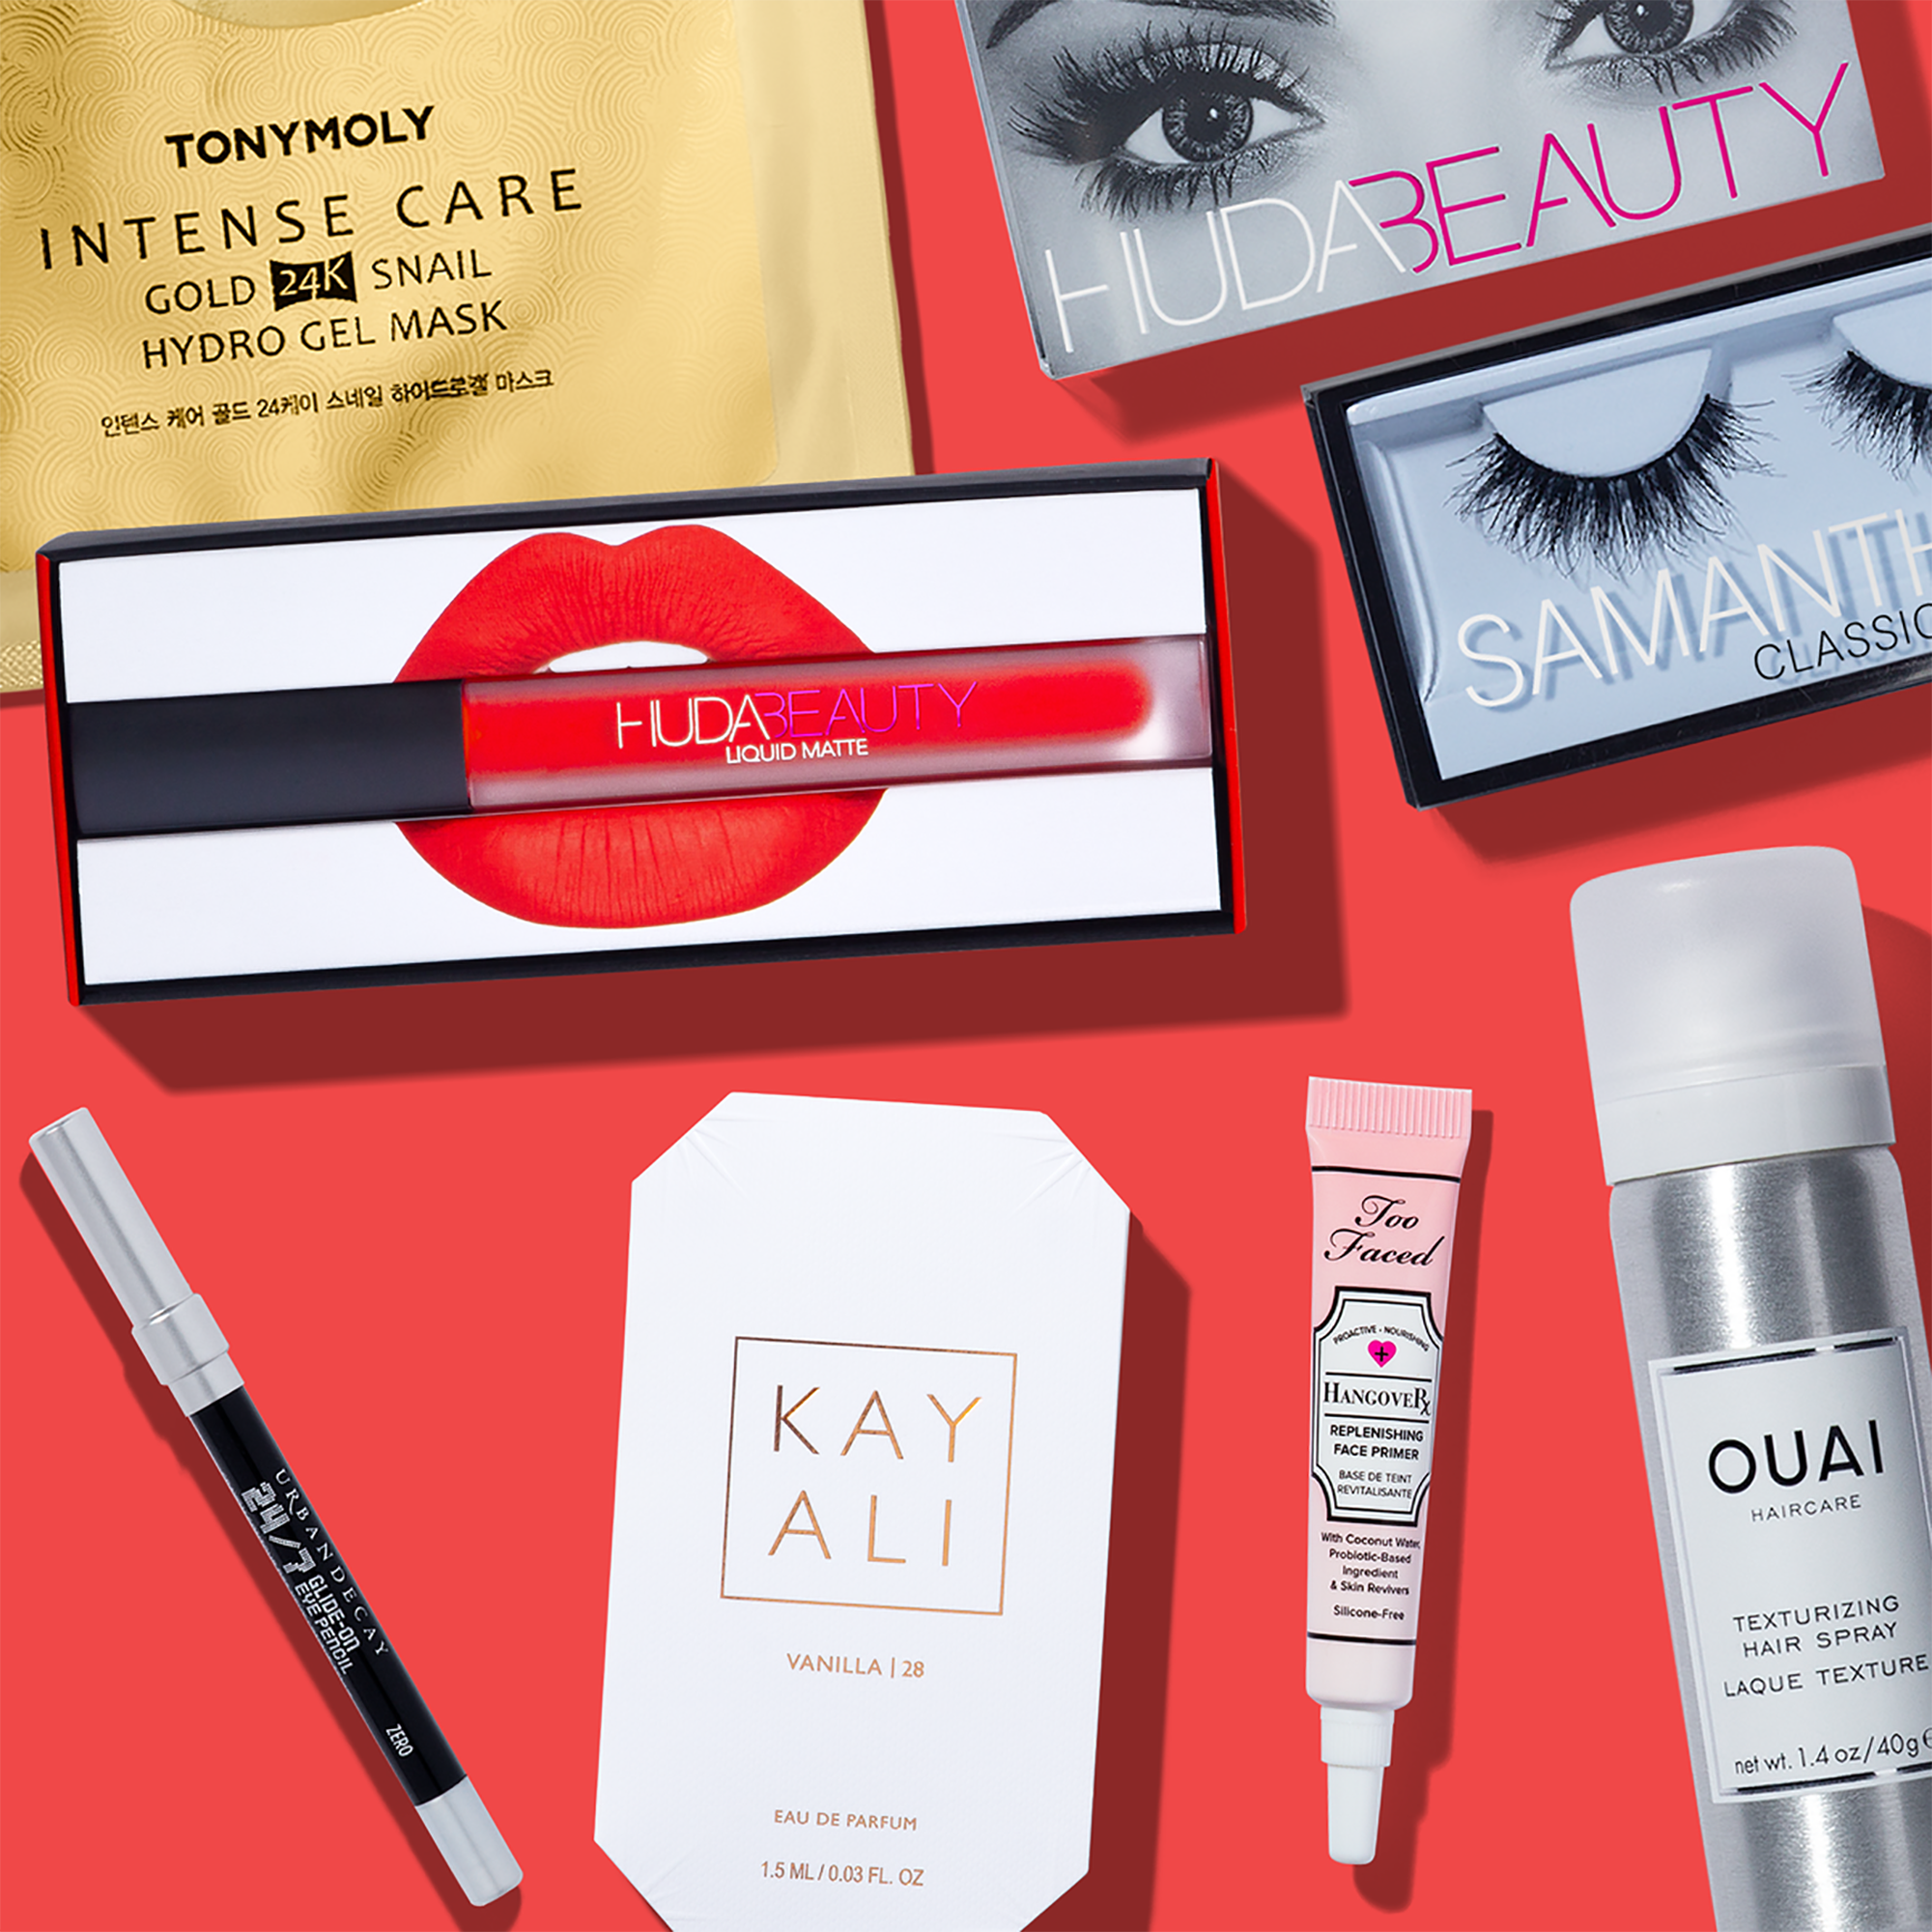 Allure Beauty Box - Luxury Beauty and Make Up Subscription Box (Pencil Makeup Gloss Lip Beauty)